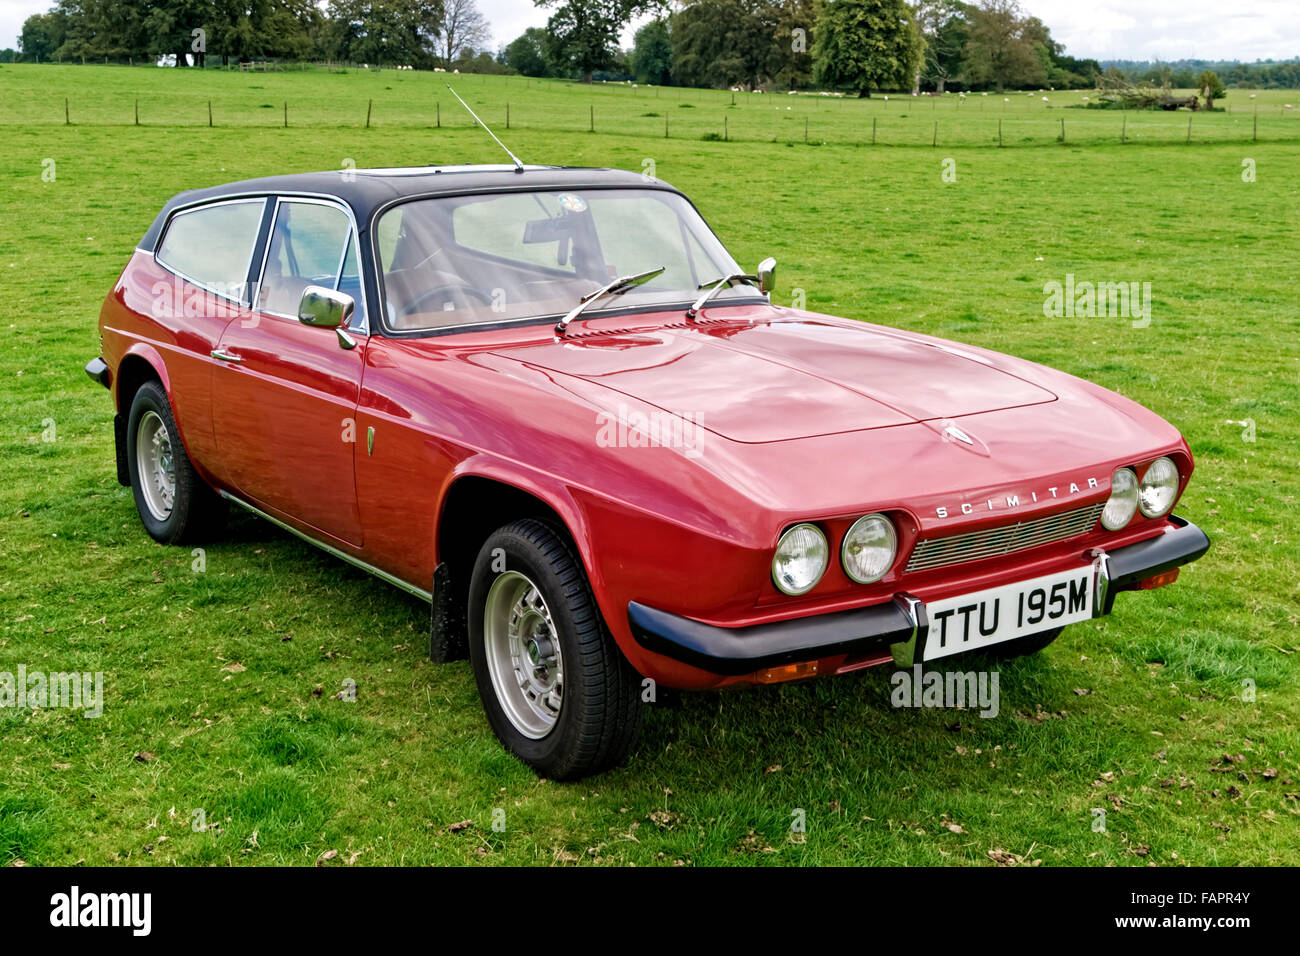 A Reliant Scimitar Gte Door Coupe Classic Motor Car At The